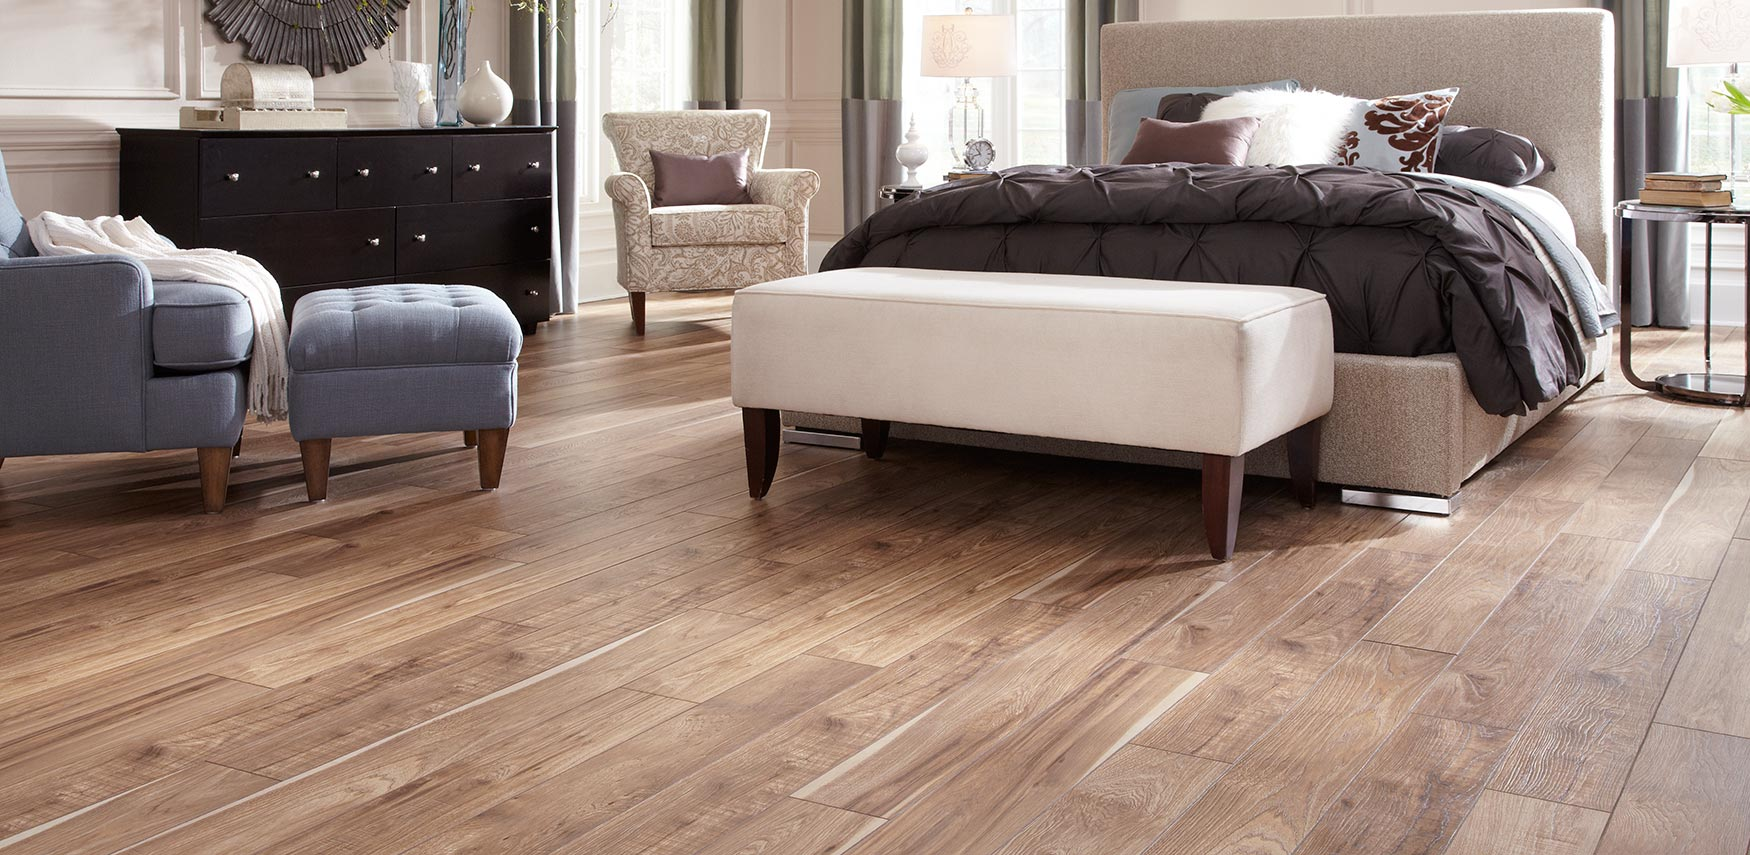 Wooden Flooring For Kitchens Mannington Flooring Resilient Laminate Hardwood Luxury Vinyl